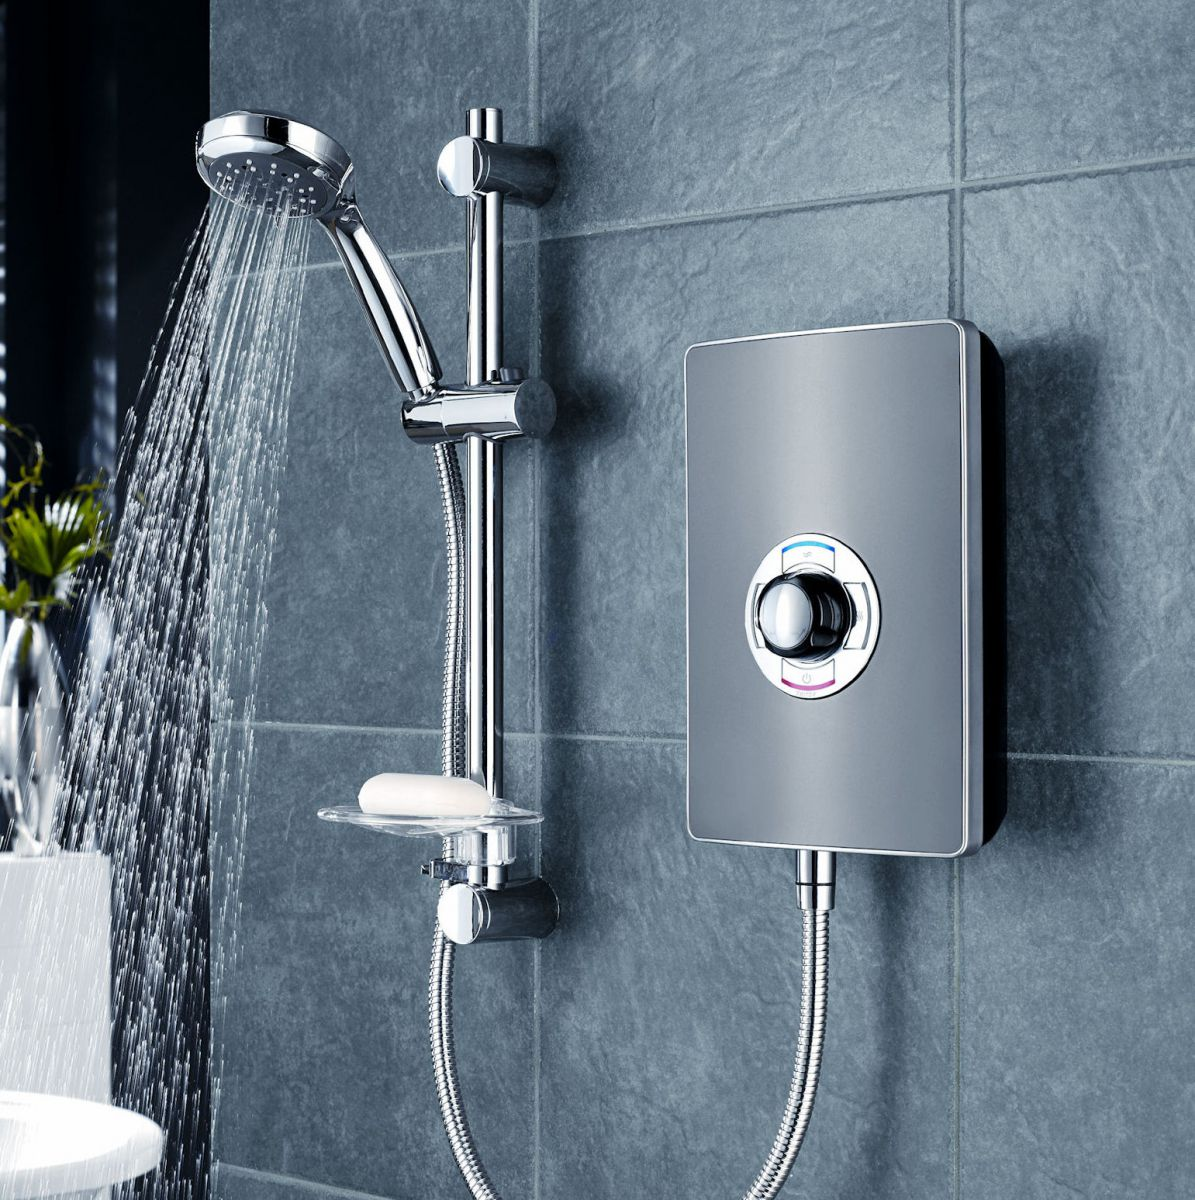 Triton aspirante electric shower gun metal uk bathrooms for Housse aspirante